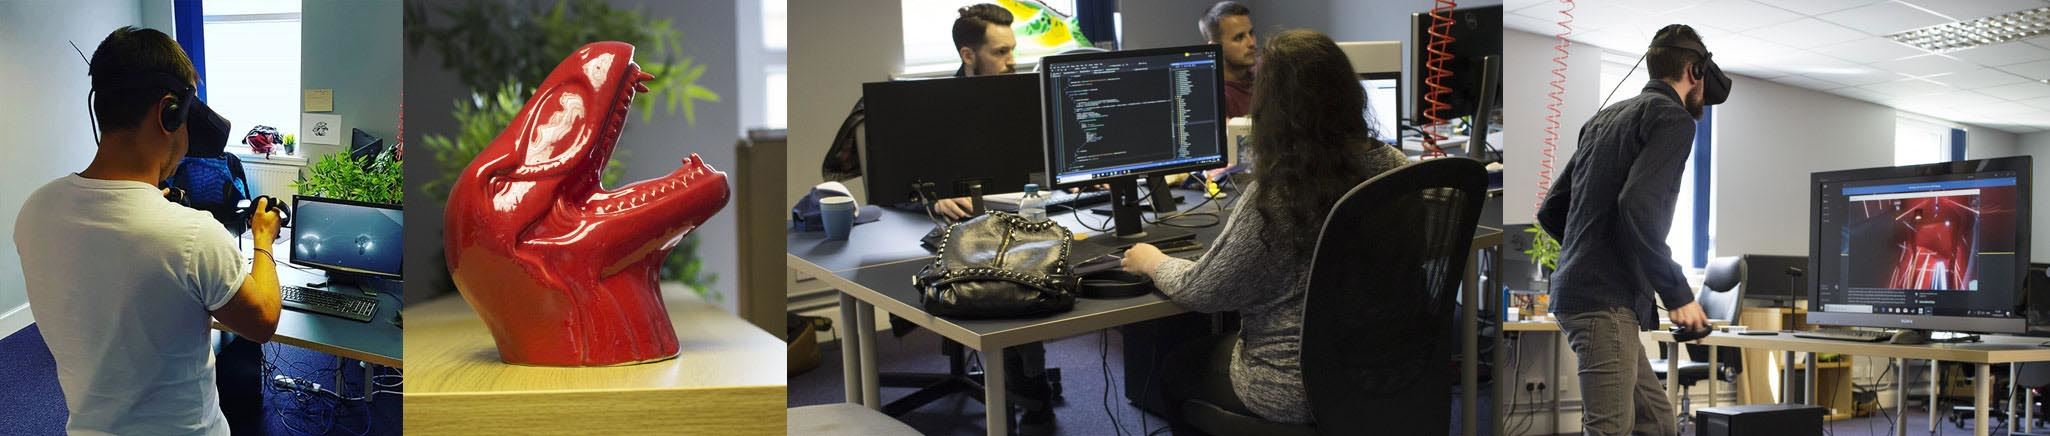 Bad Dinosaur, software development agency in Edinburgh